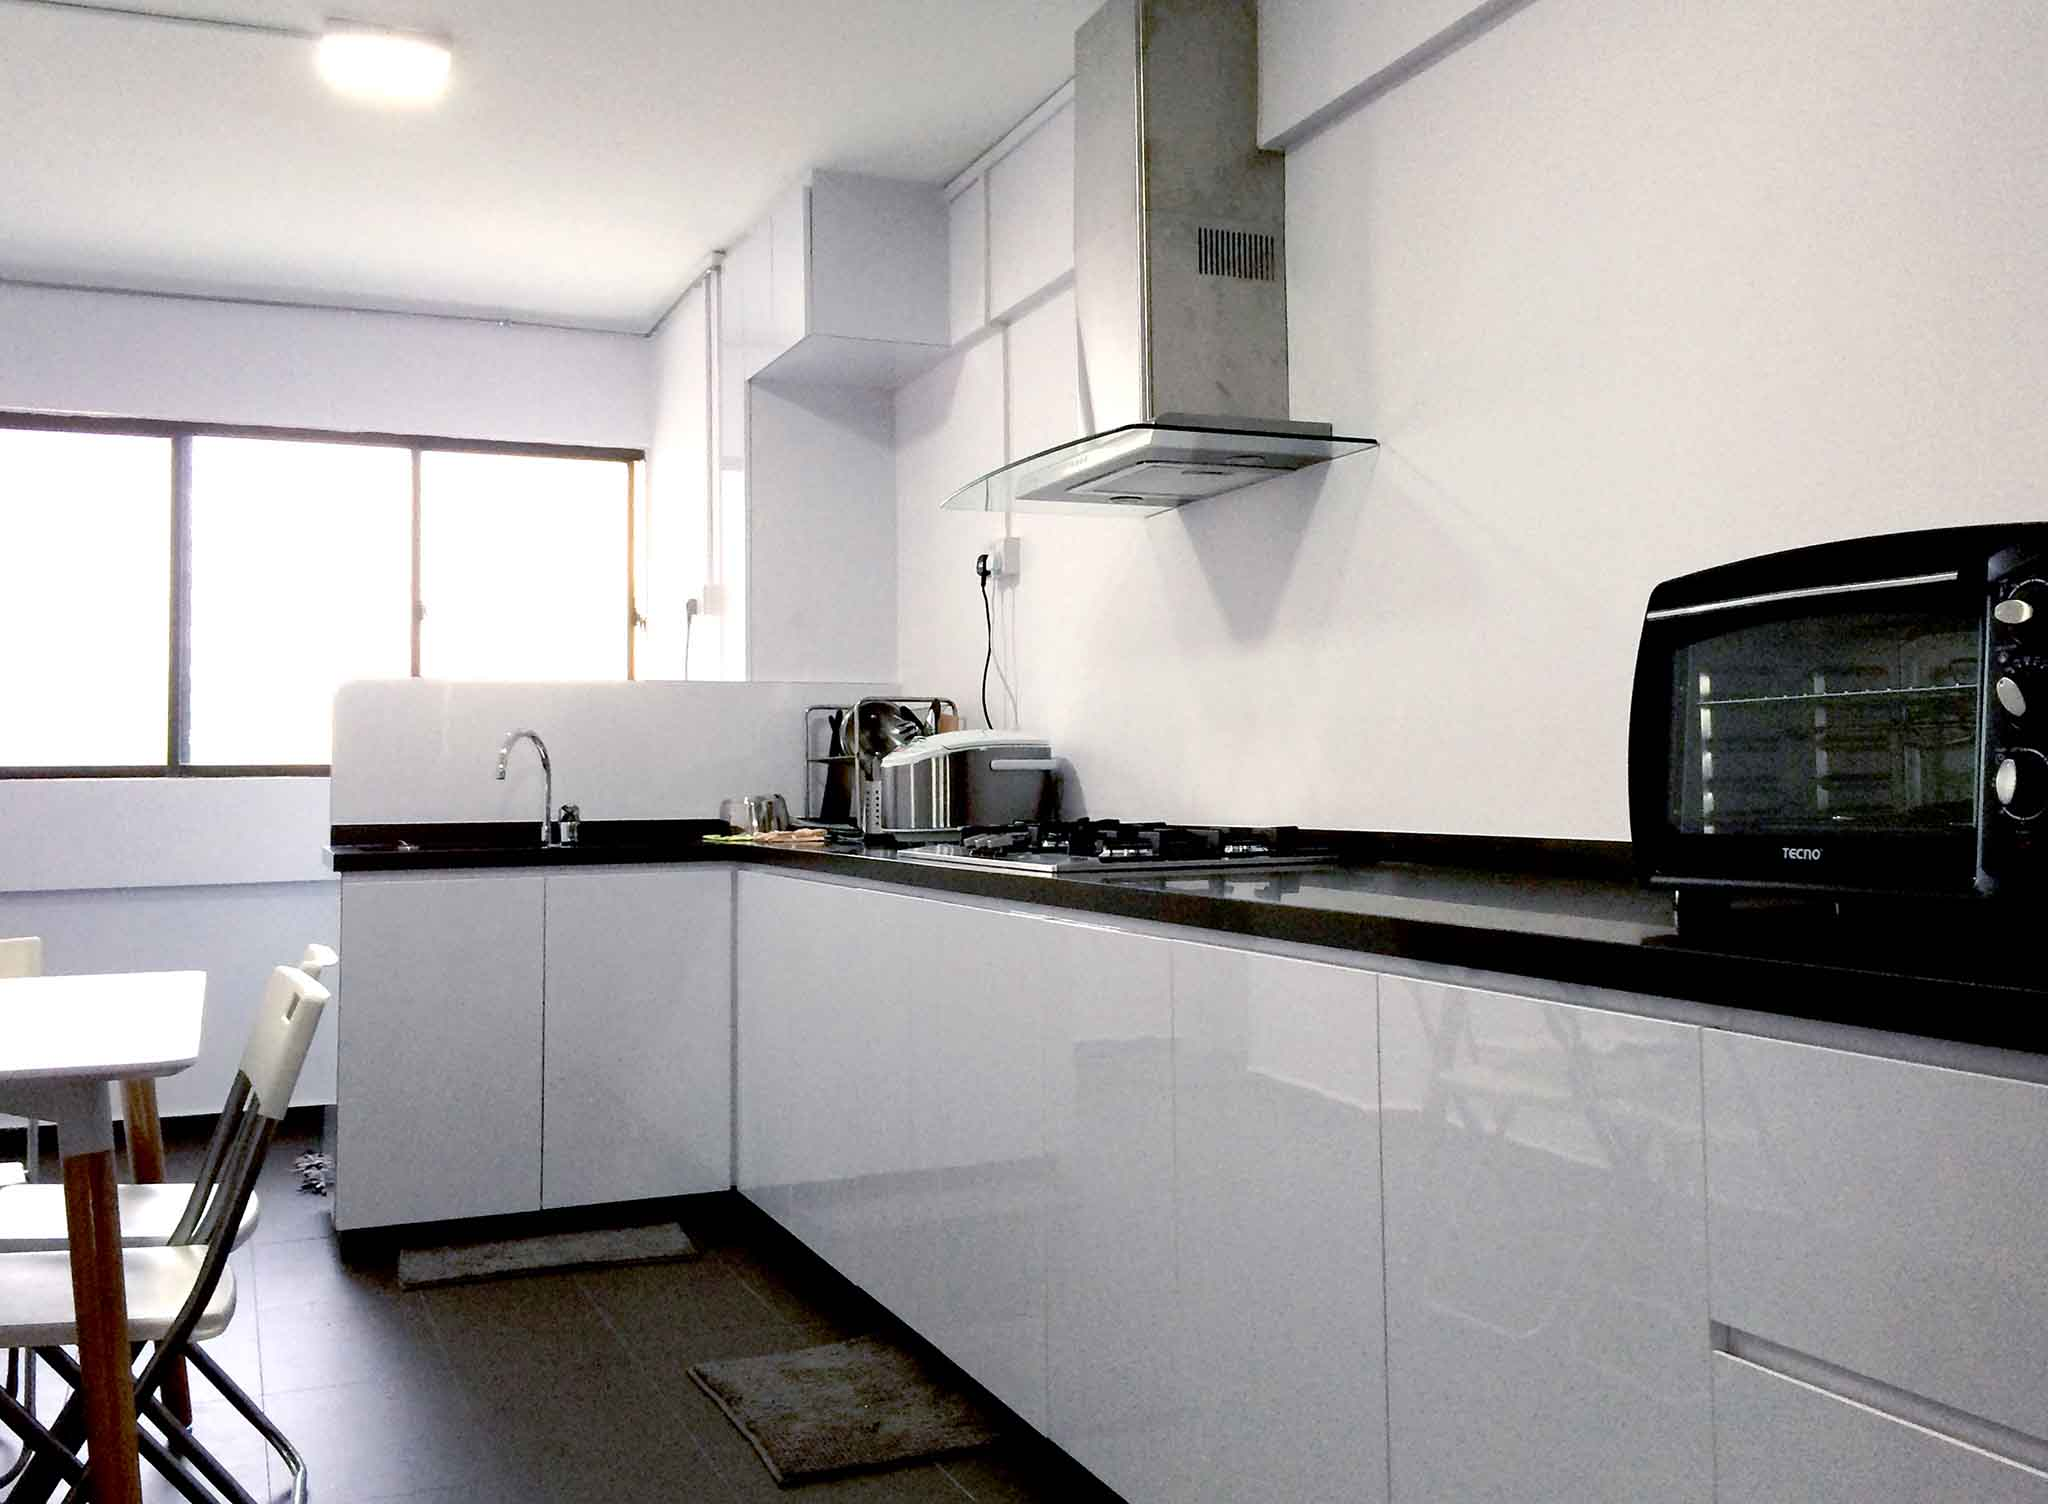 Full Height Kitchen Cabinets Hdb 4 Room Package Renovation Contractor Singapore